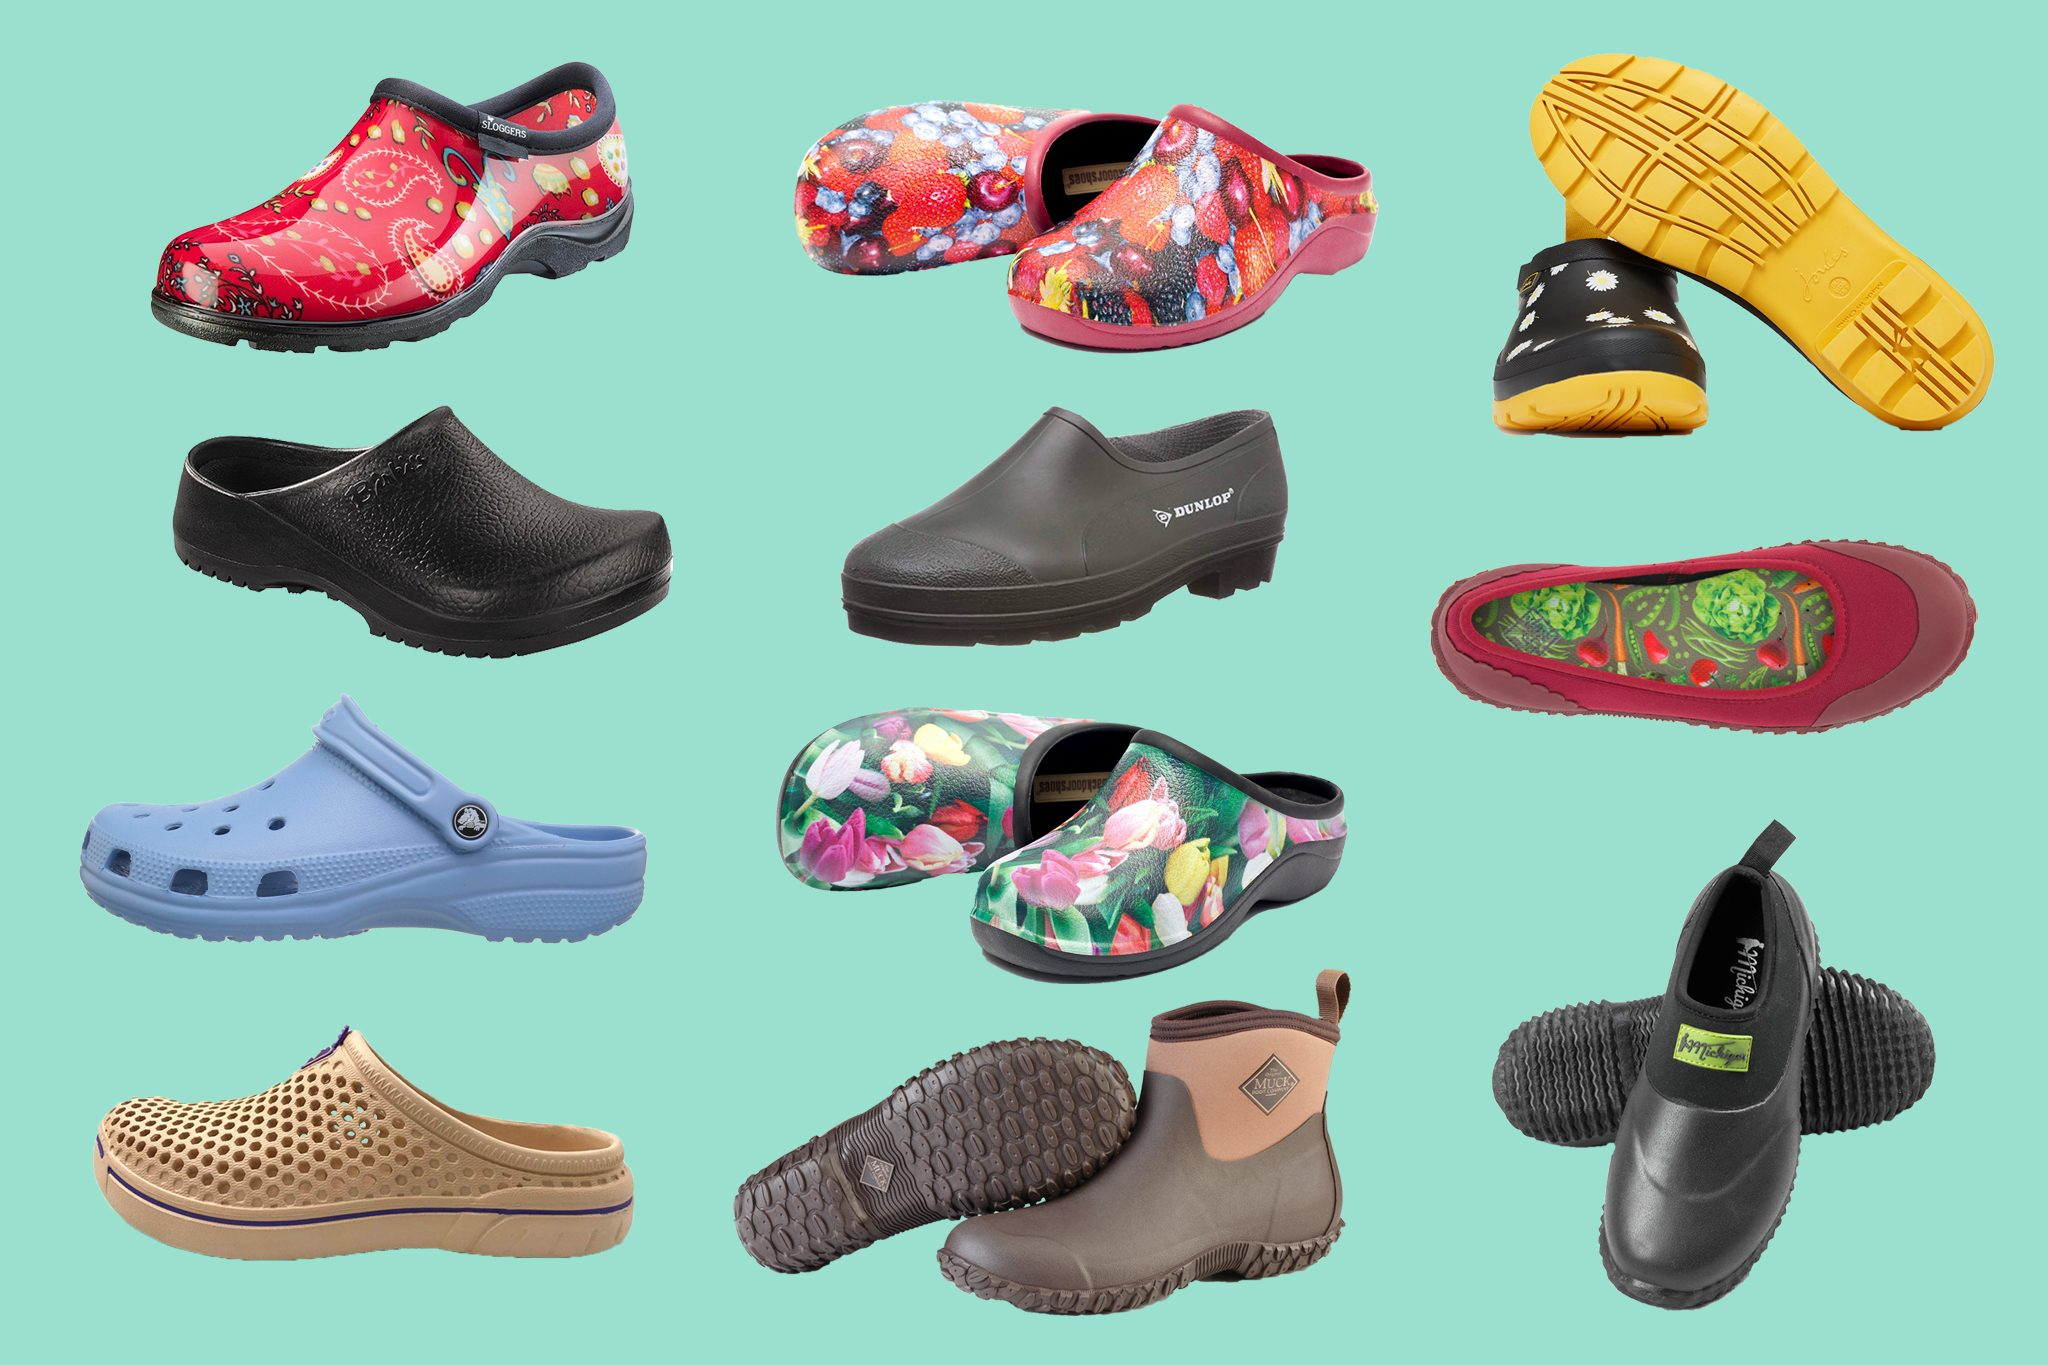 10 of the Best Gardening Shoes - BBC